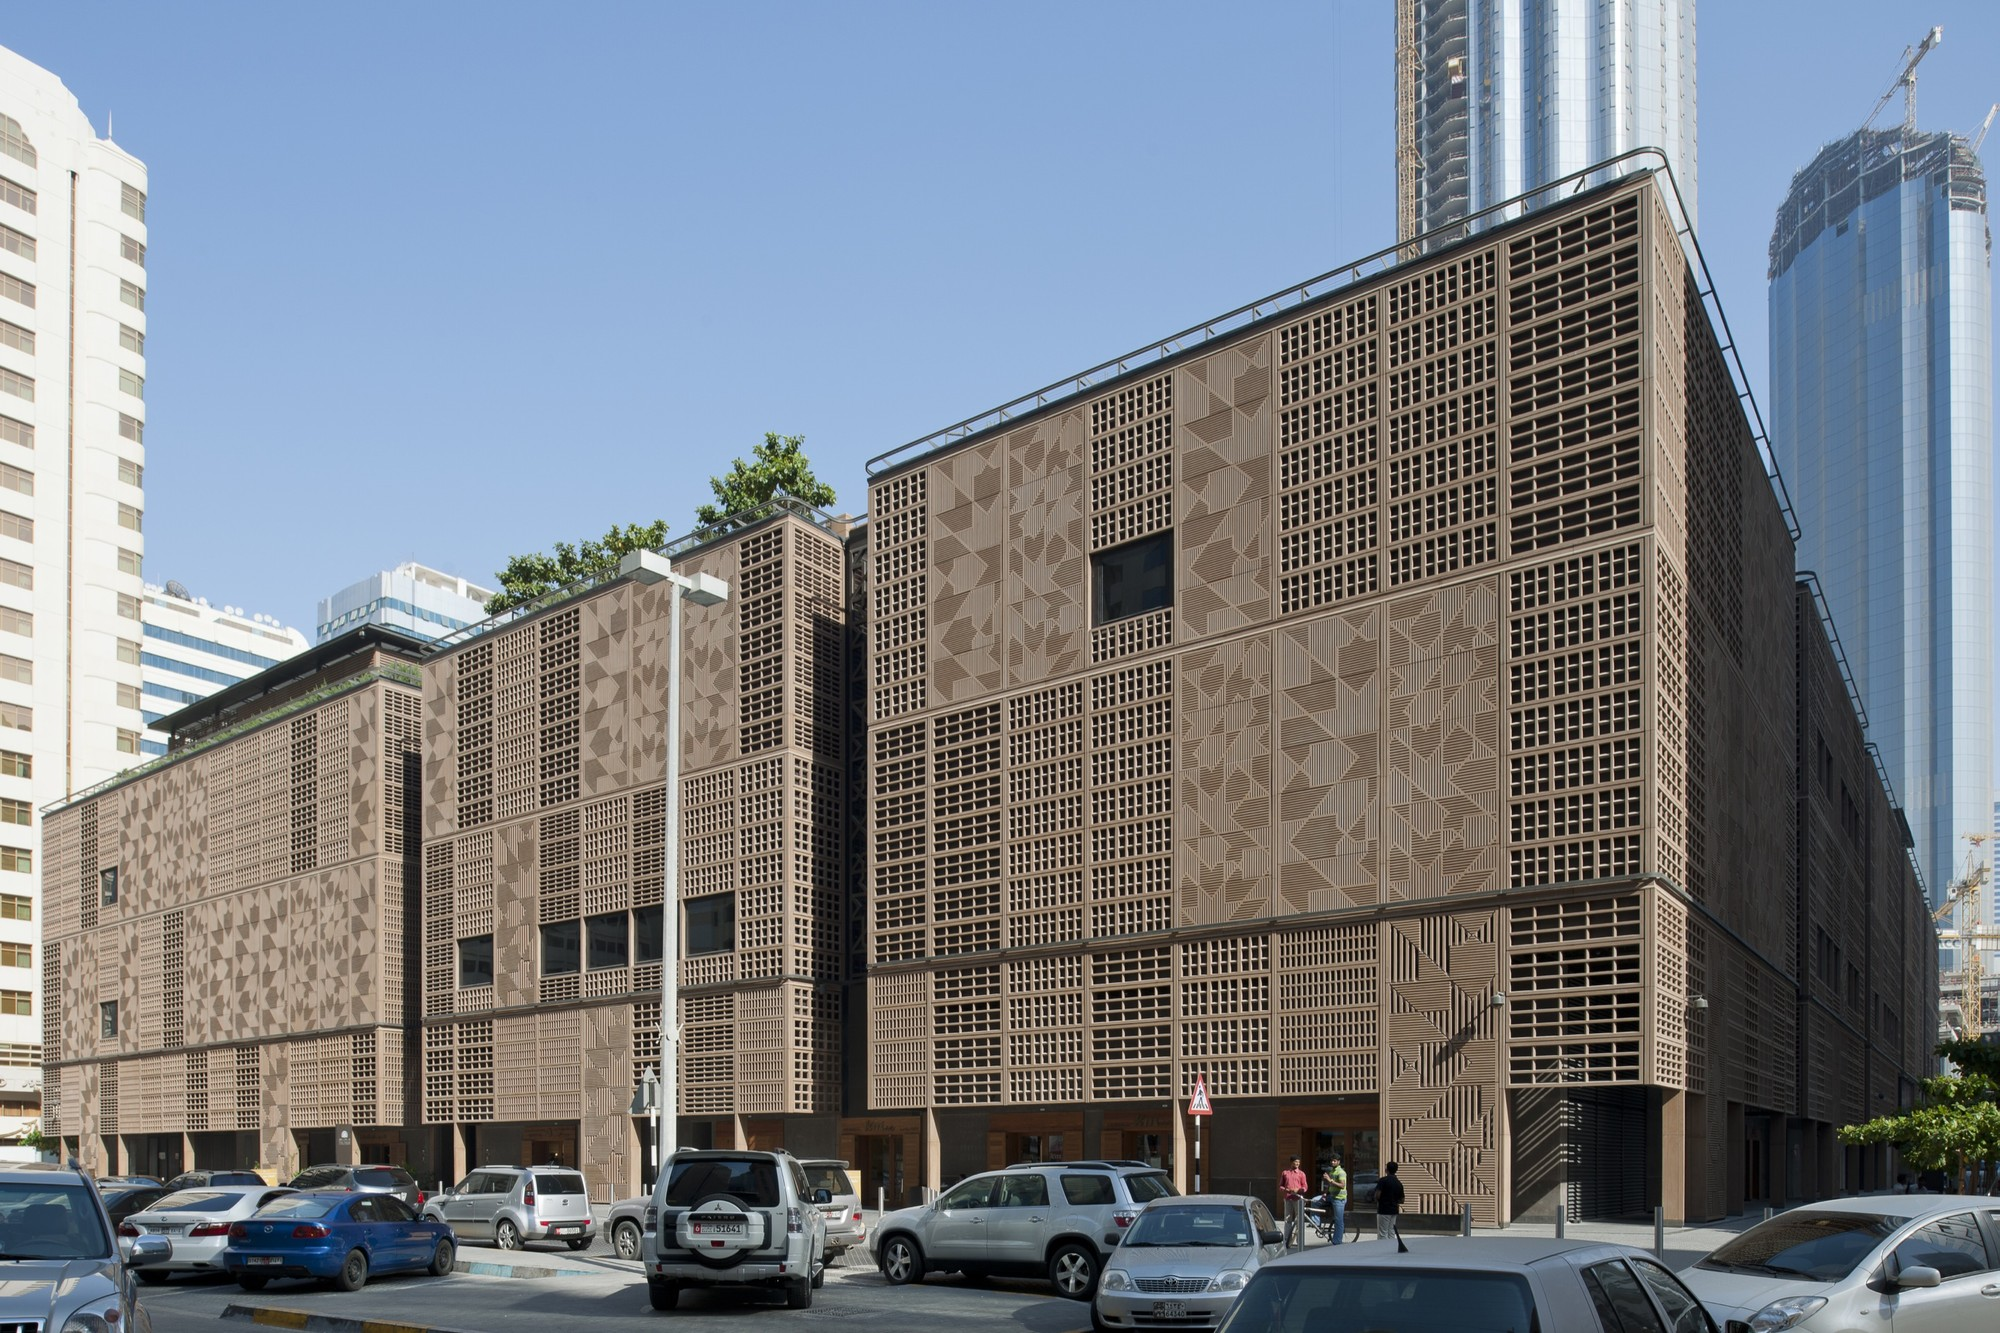 Abu dhabi central market foster partners archdaily for Ec harris dubai